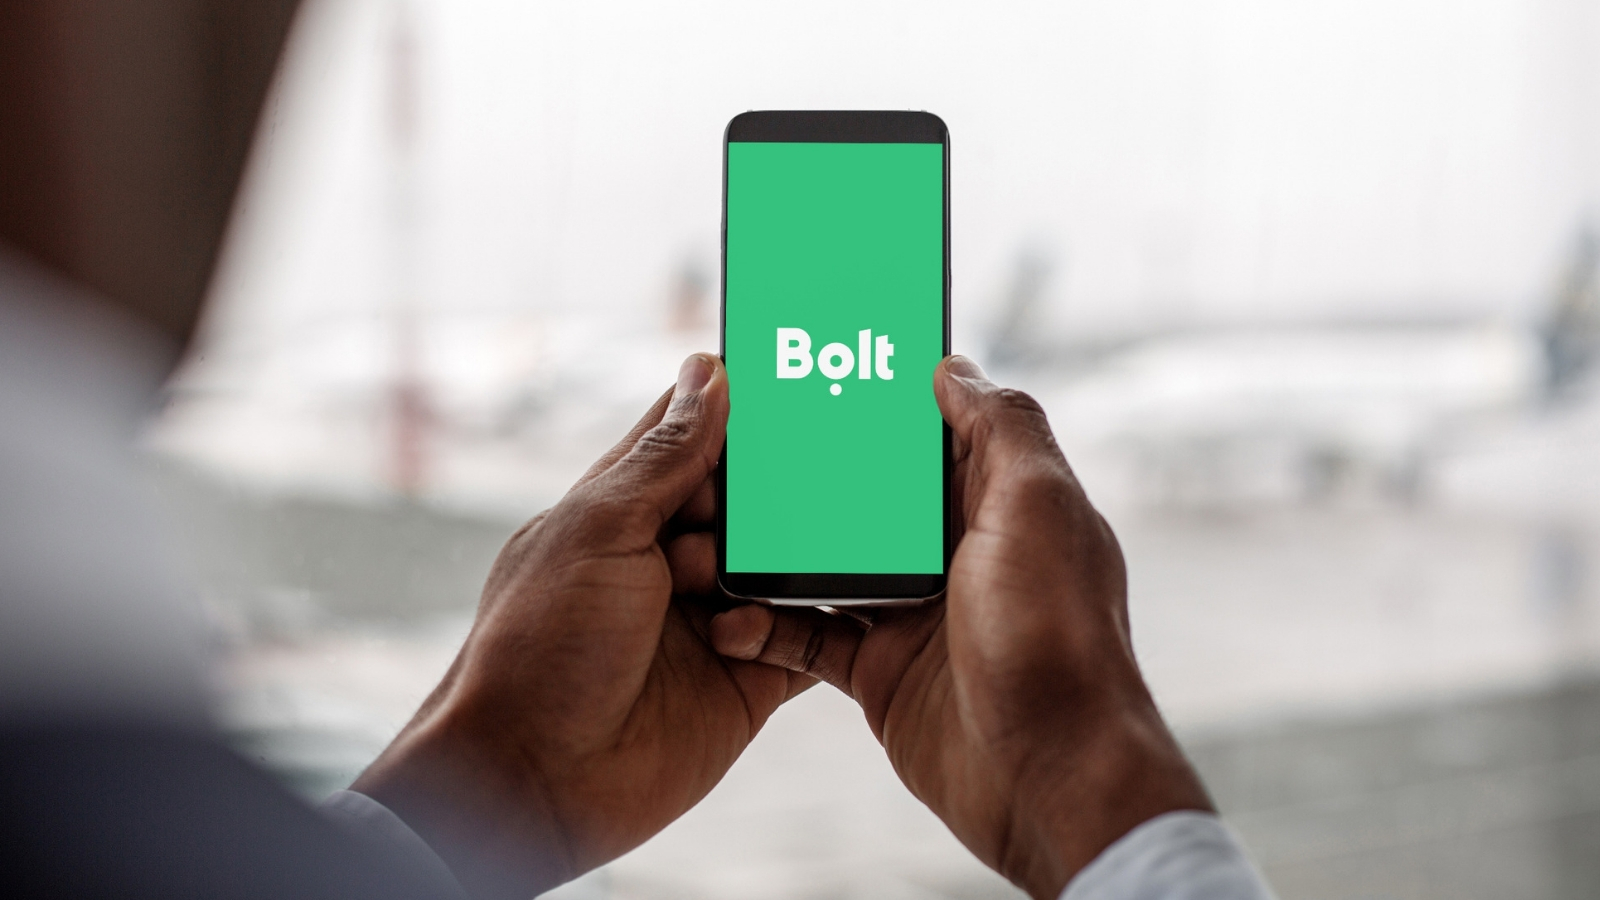 Bolt has launched Bolt for Business in South Africa